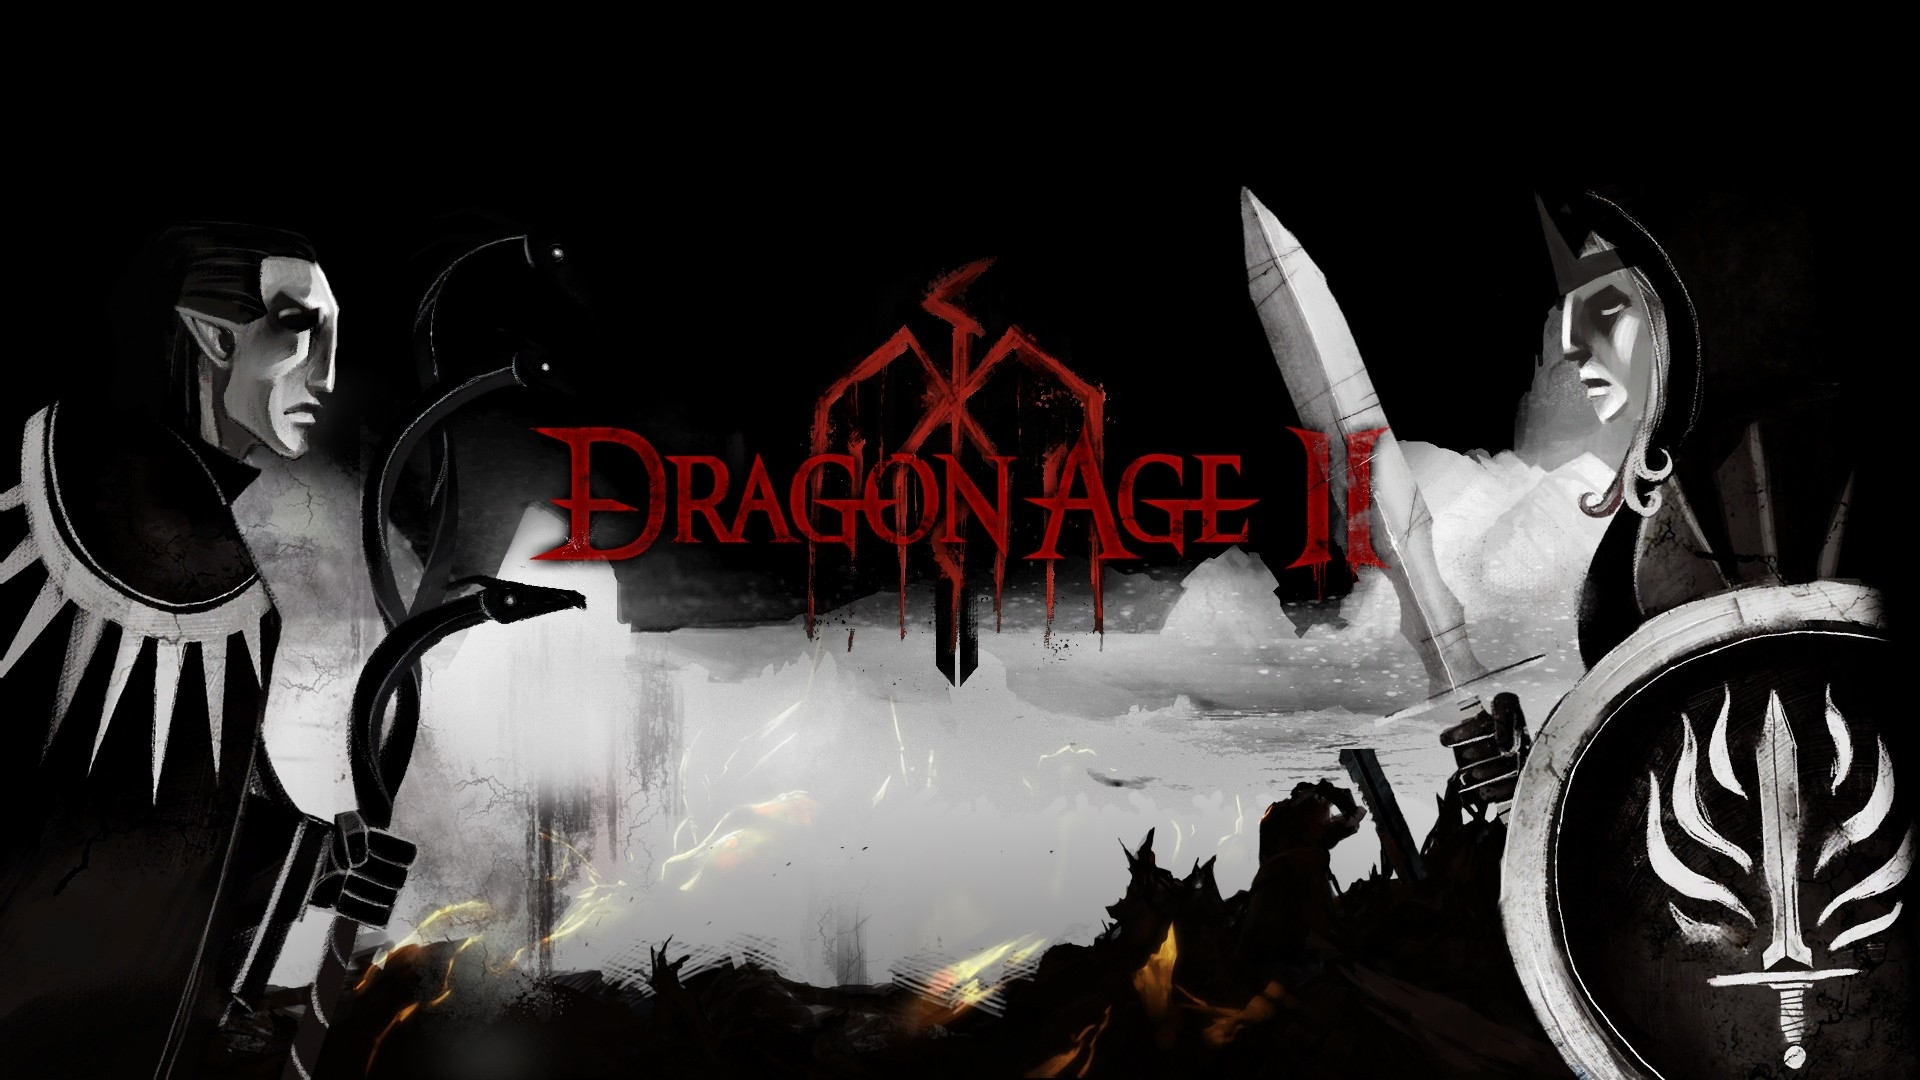 dragon age ii full hd wallpaper and background image | 1920x1080